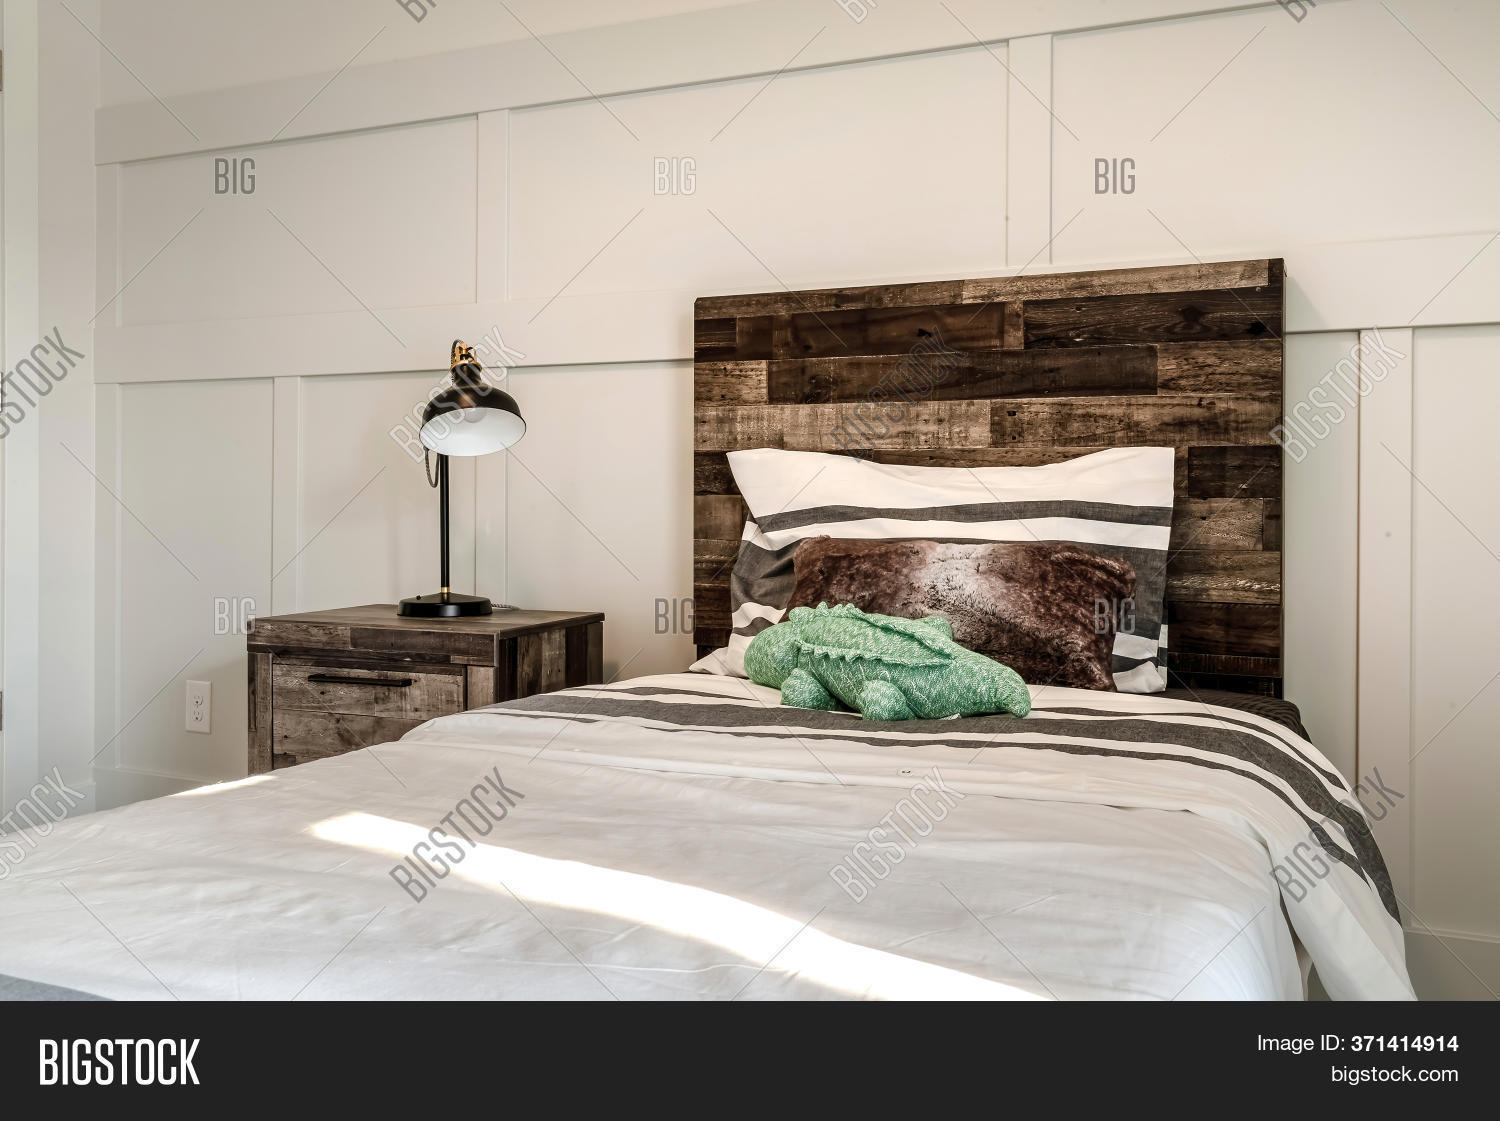 Single Bed Brown Image Photo Free Trial Bigstock